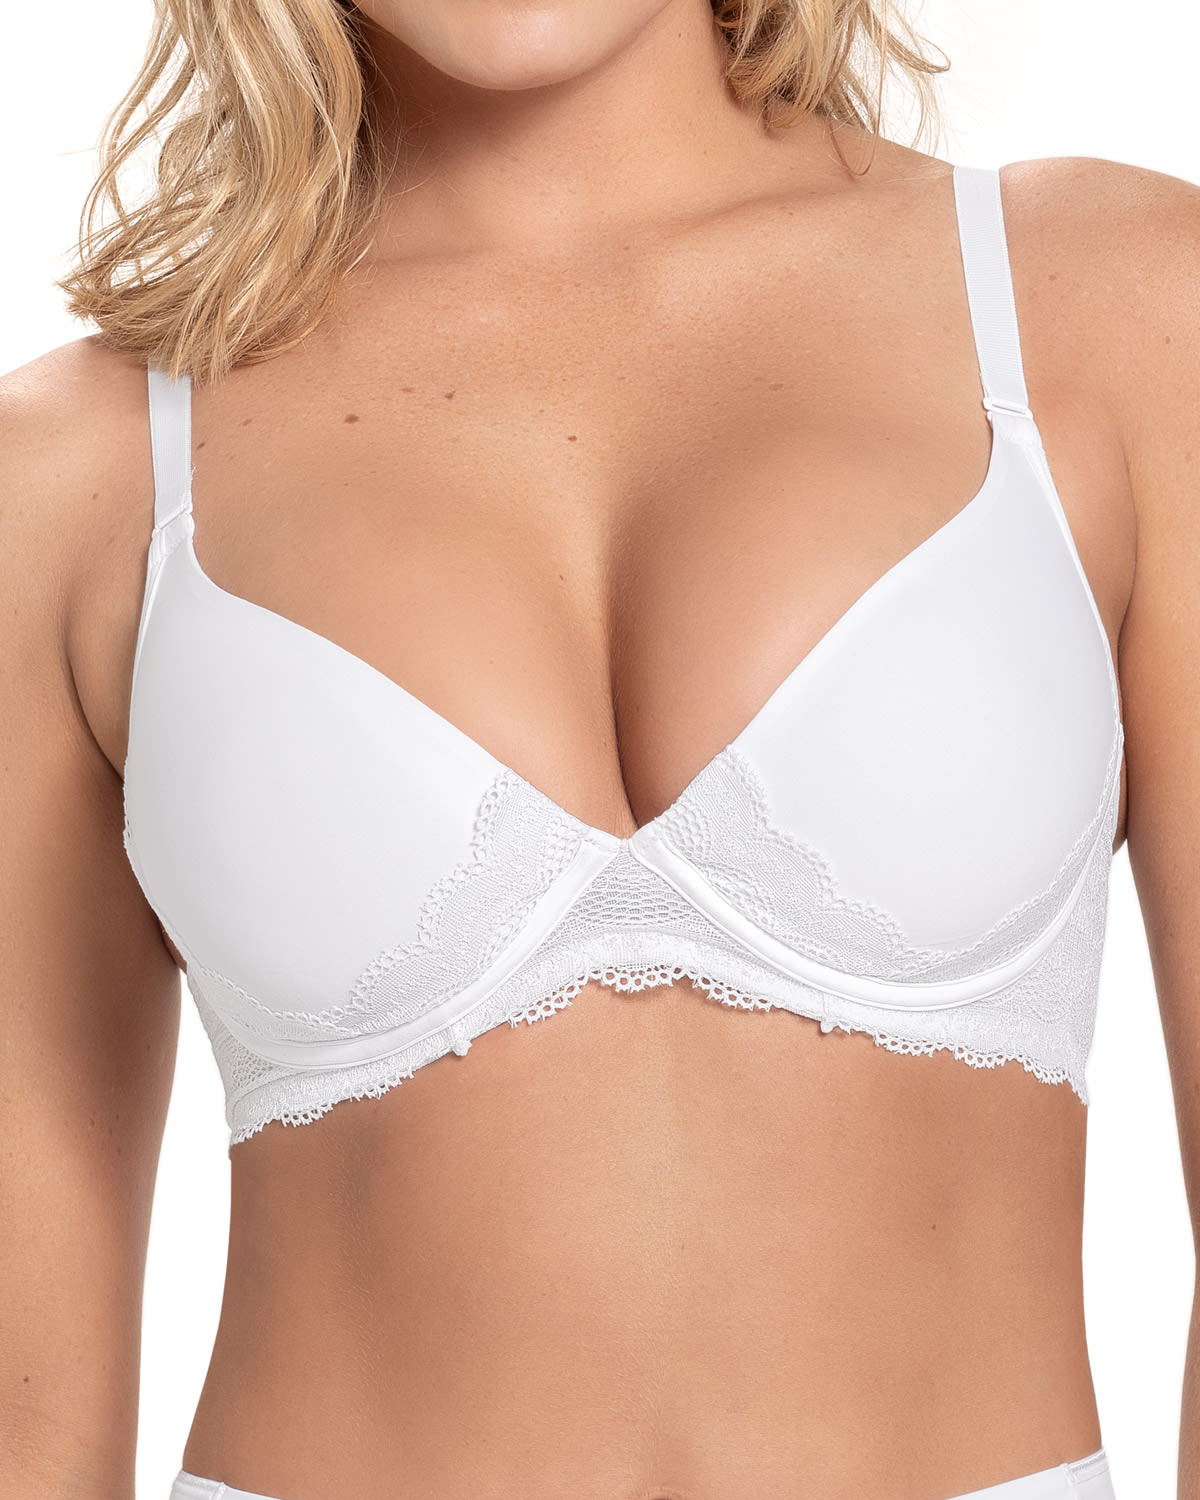 Light Lace Underwire Contour T-Shirt Bra